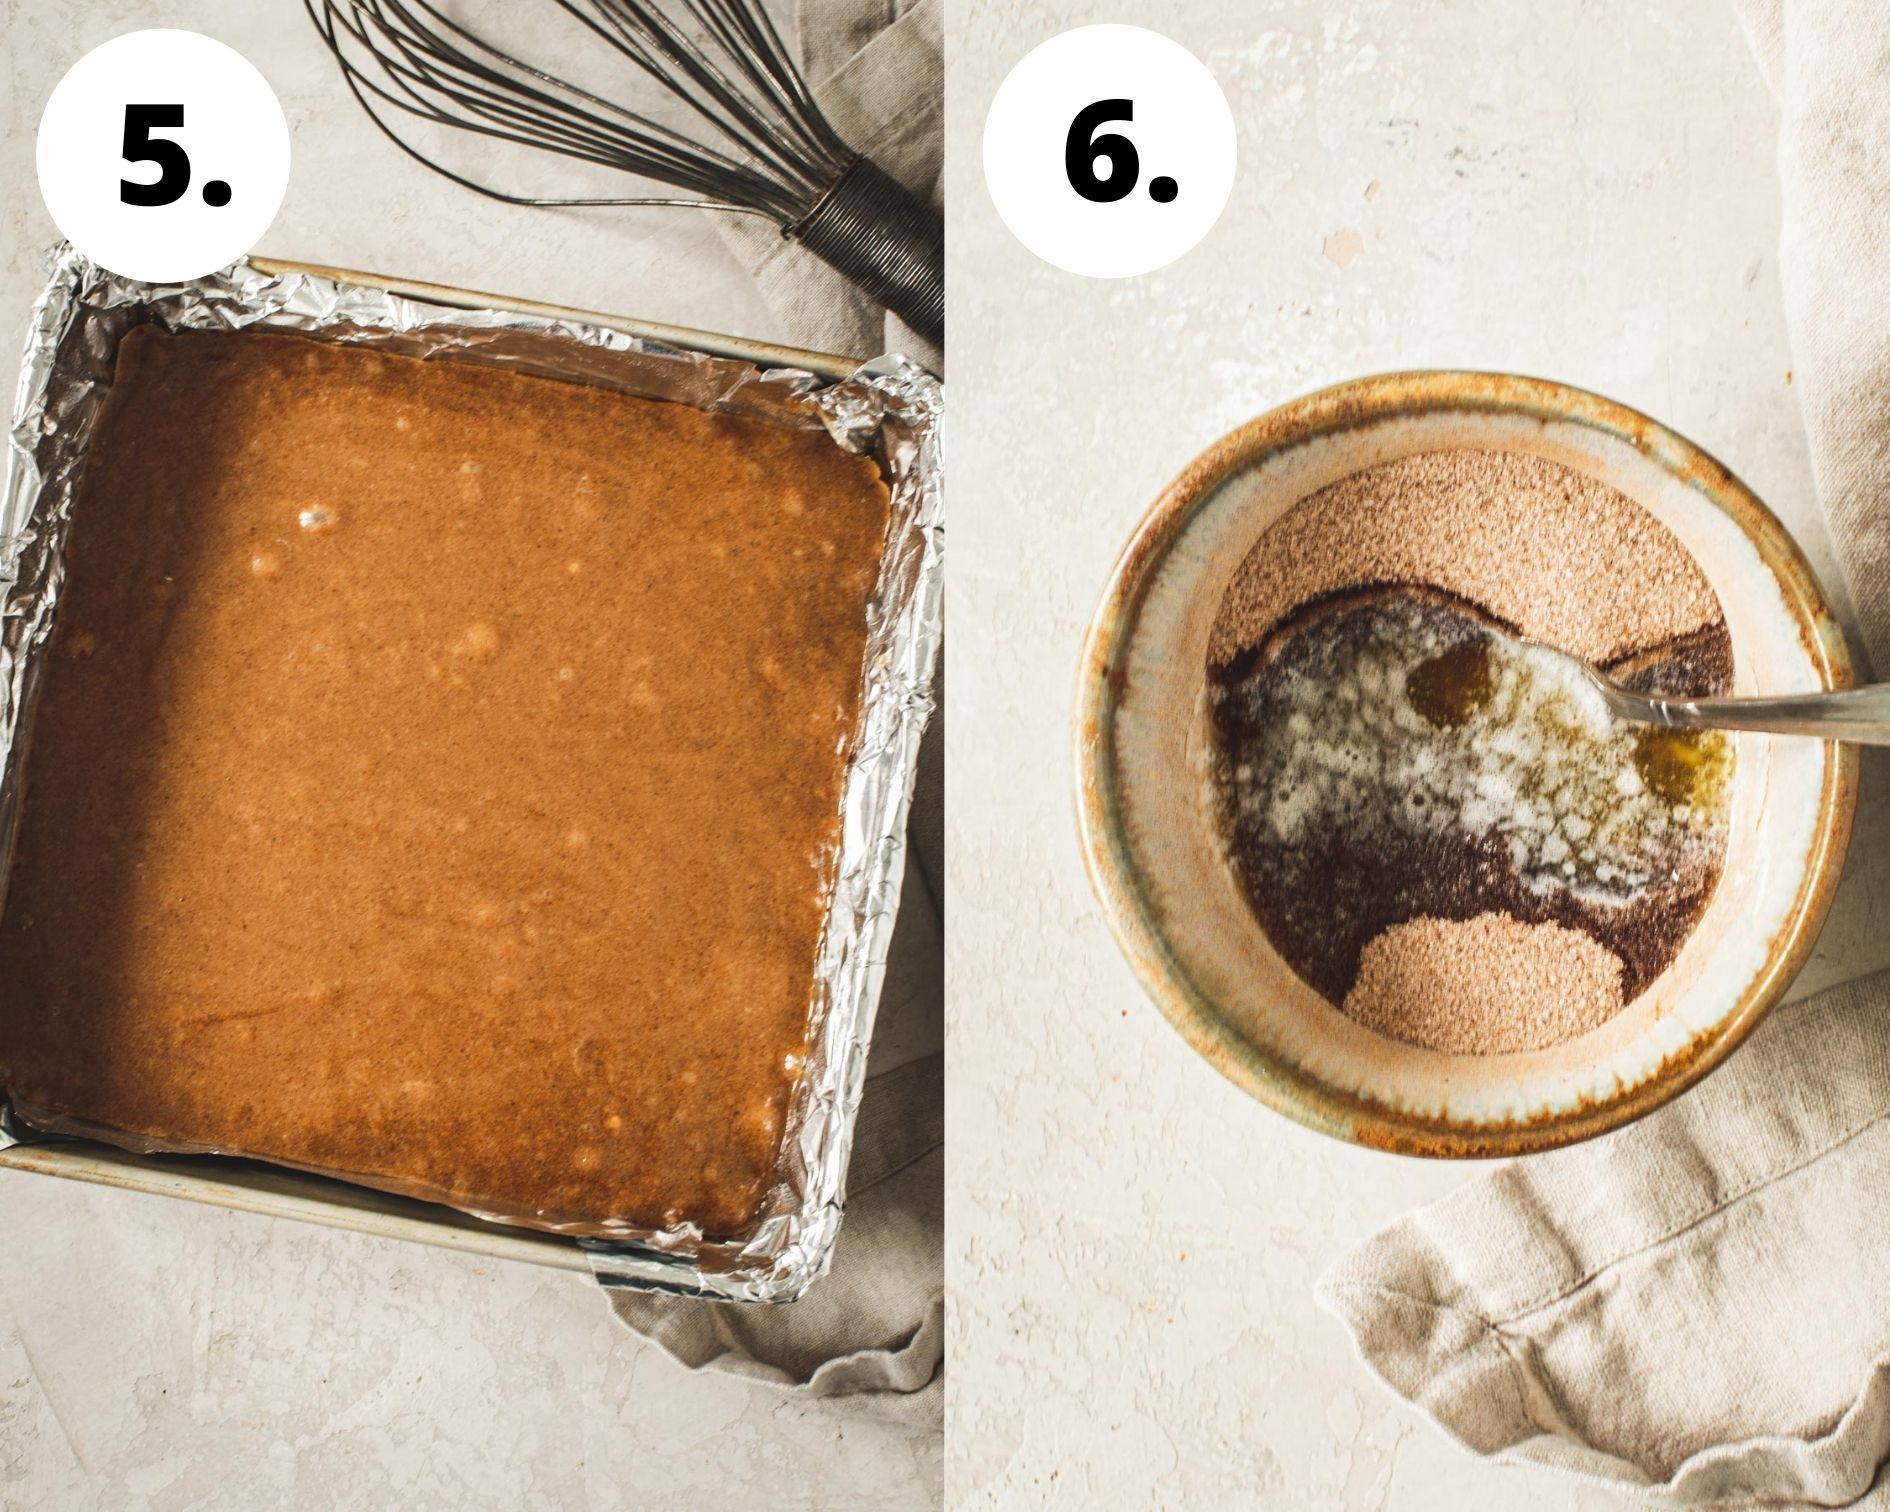 Cinnamon squares process steps 5 and 6.